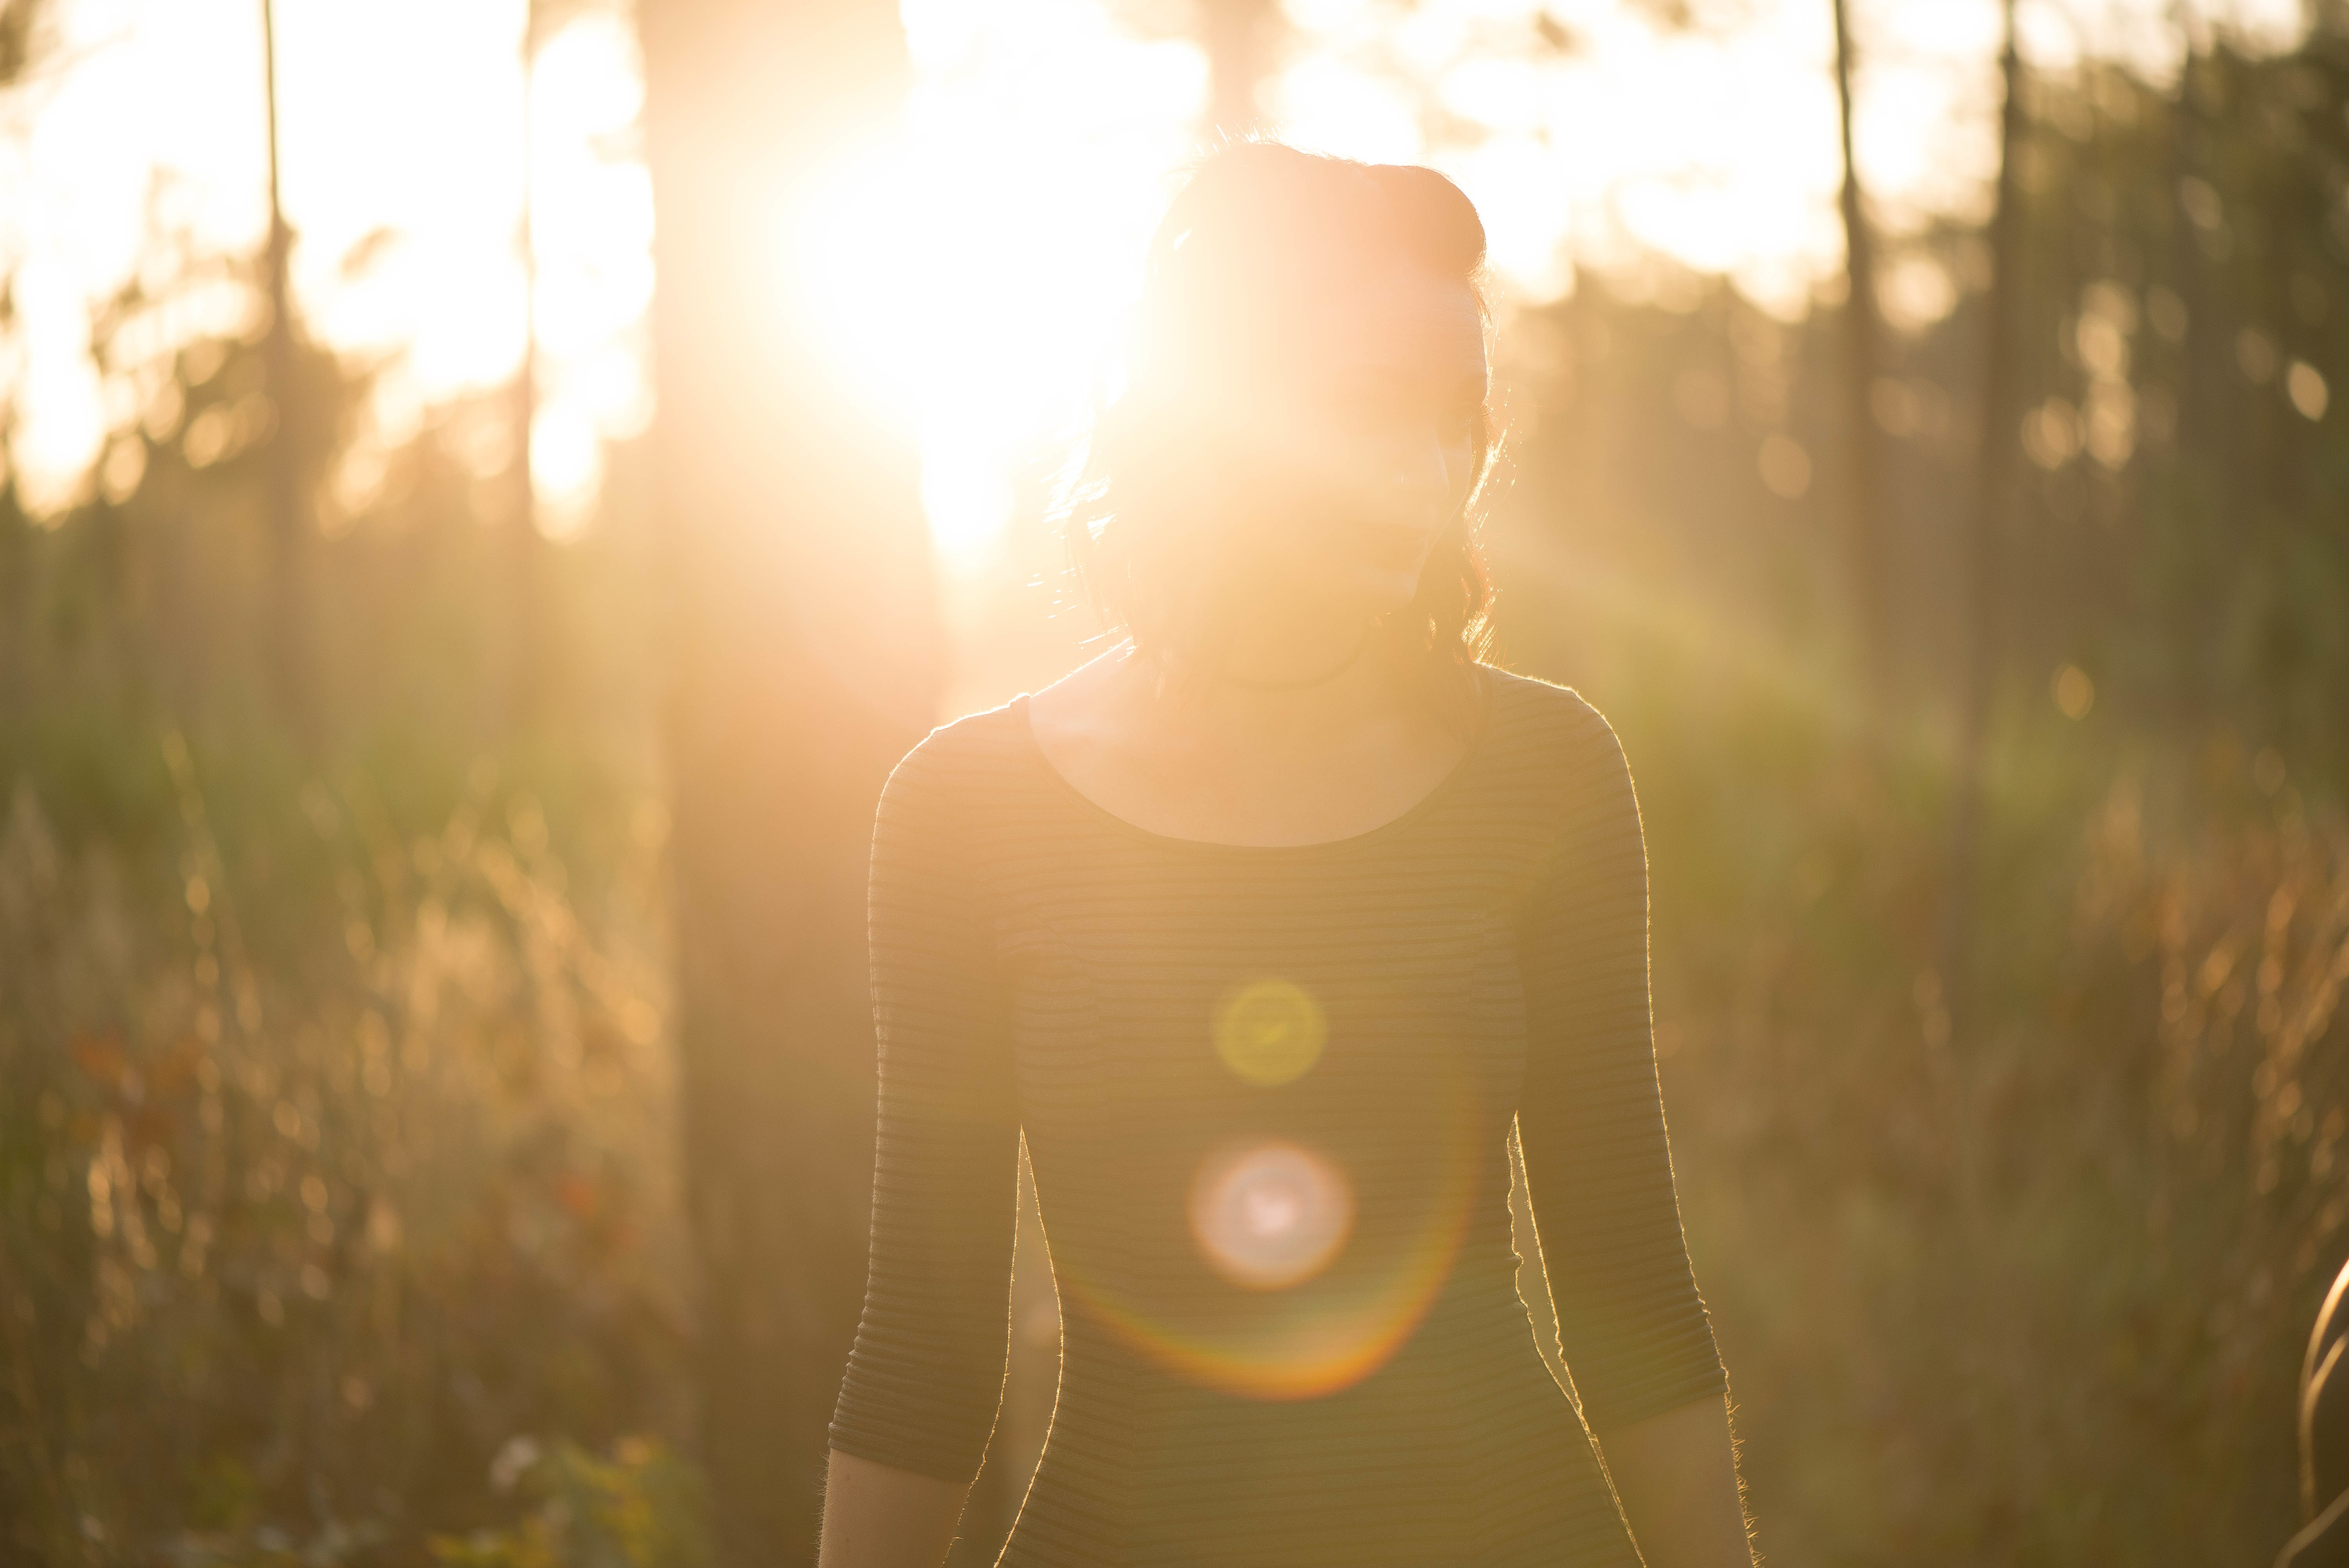 A woman standing in a forest silhouetted by the glare of a setting sun